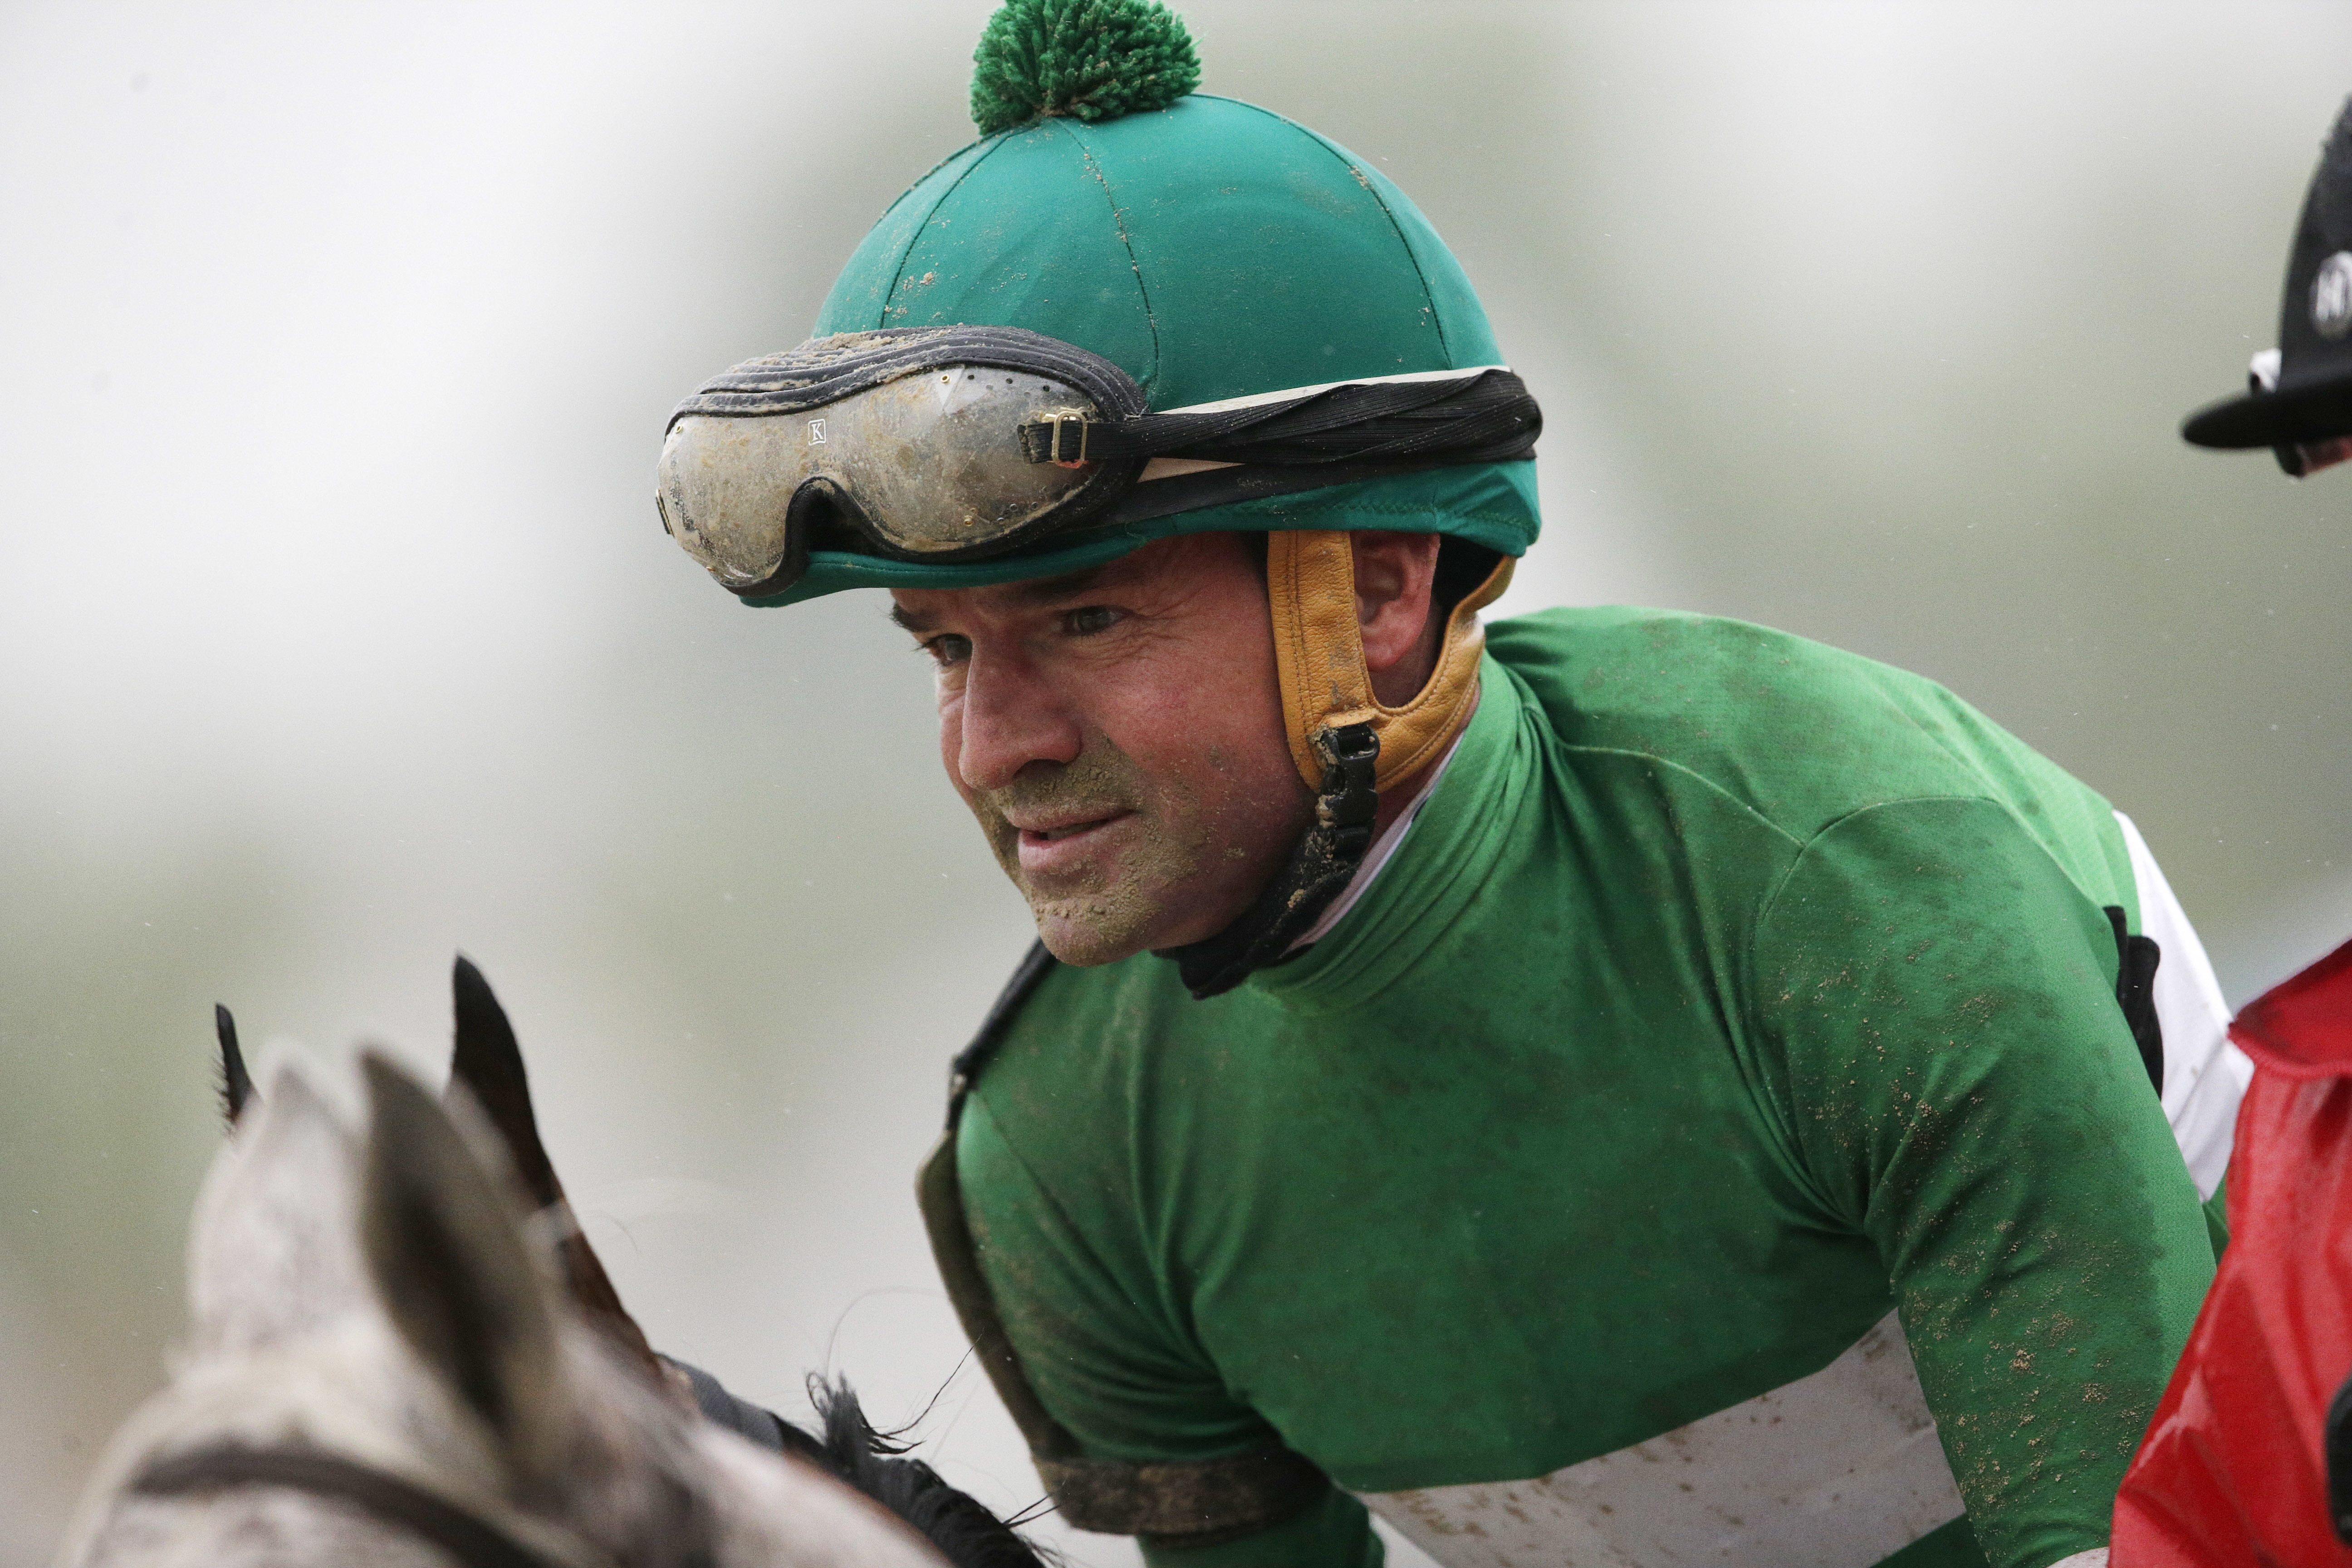 FILE - In this May 21, 2016, file photo, Kent Desormeaux atop Exaggerator moves to winners circle after winning the 141st Preakness Stakes horse race at Pimlico Race Course in Baltimore. Hall of Fame jockey Kent Desormeaux has returned from a drug and alc